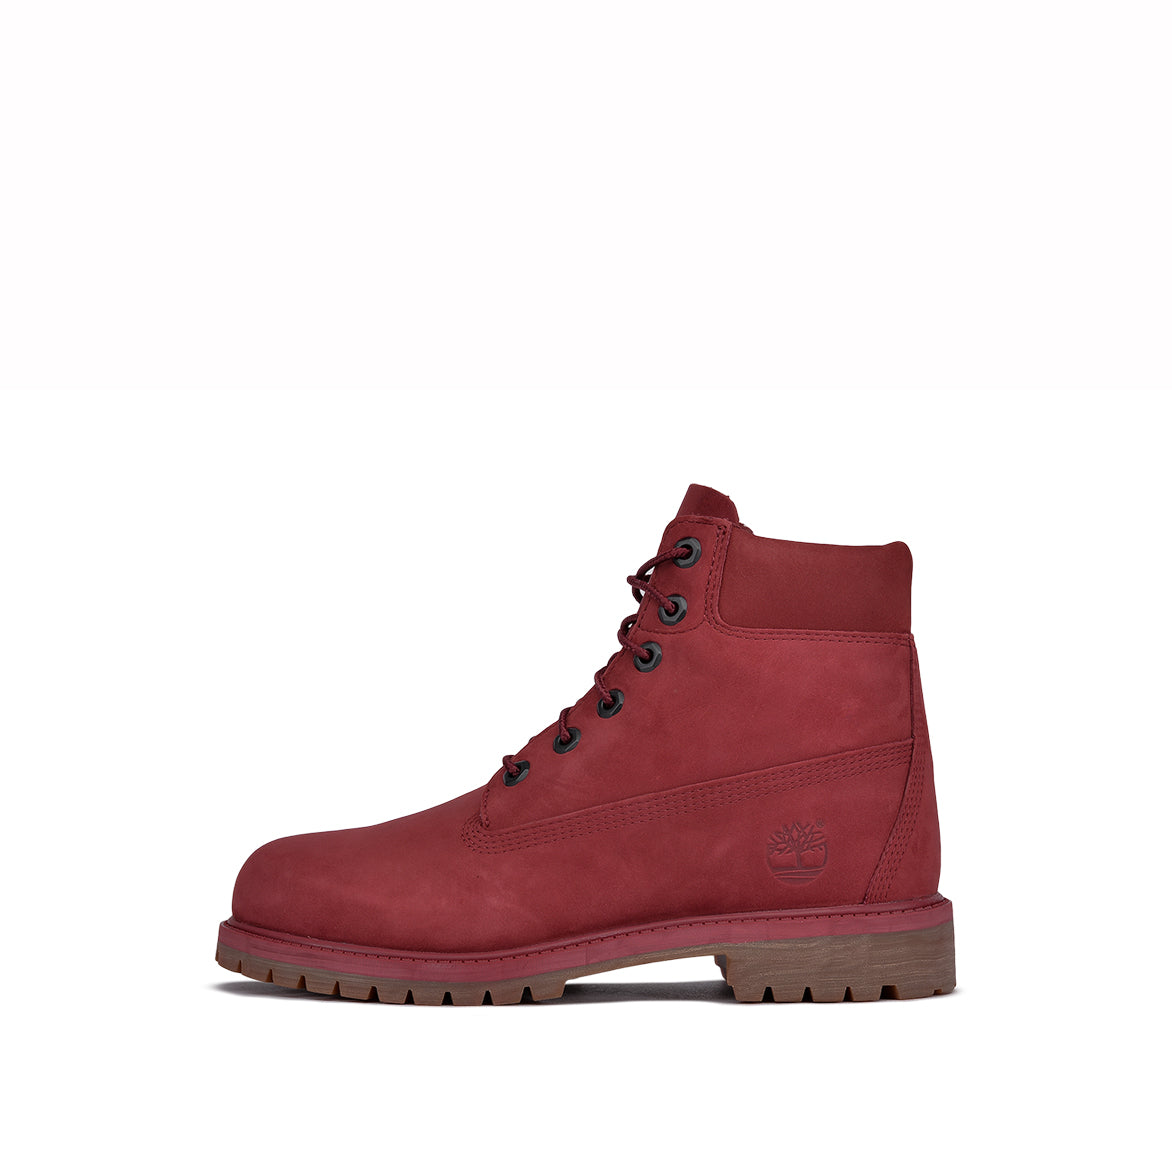 "6"" PREMIUM WATERPROOF BOOT (YOUTH) - BURGUNDY"